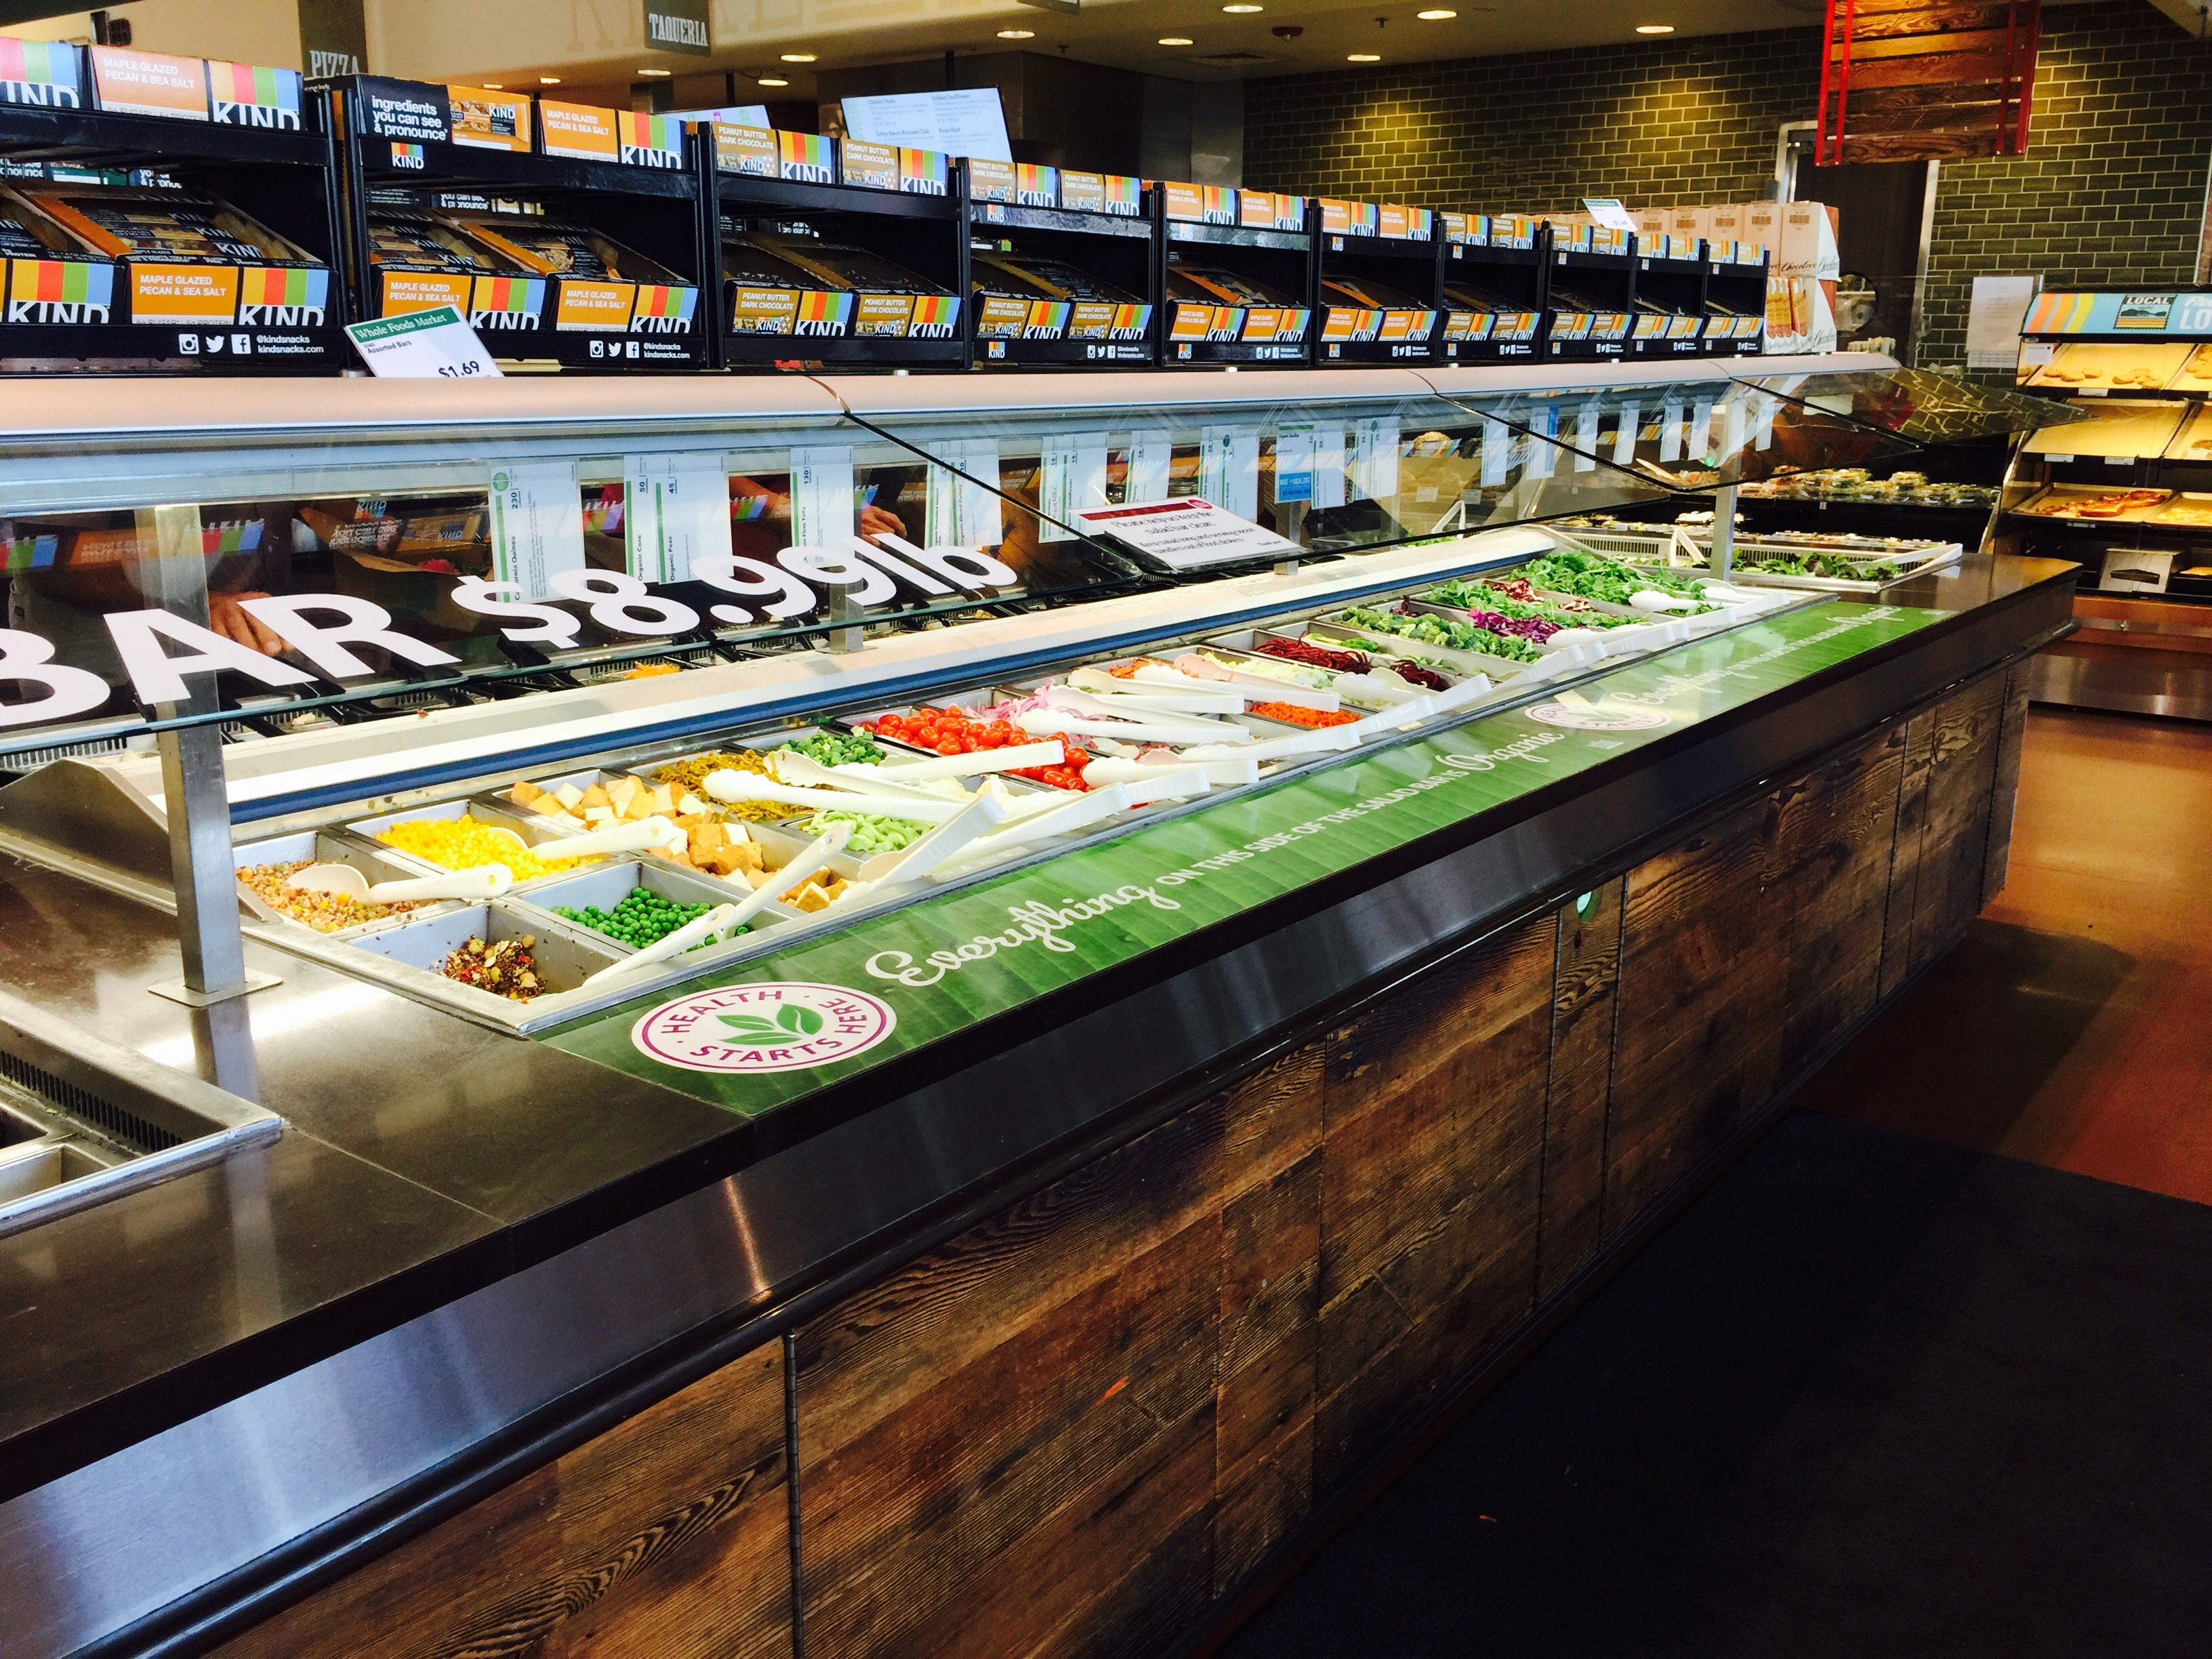 17 practical ways to save at whole foods market – Olive and salad bar